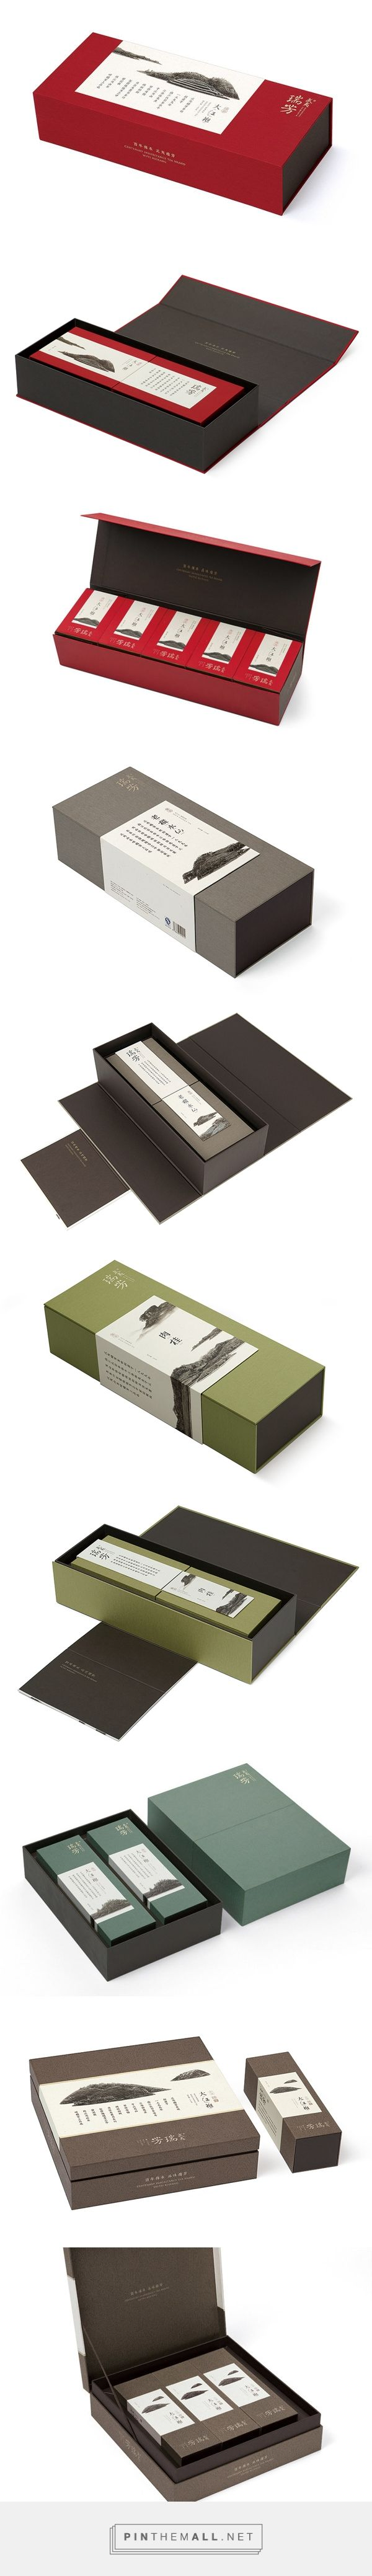 WUYI RUIFANG TEA #packaging PD -明體字搭配